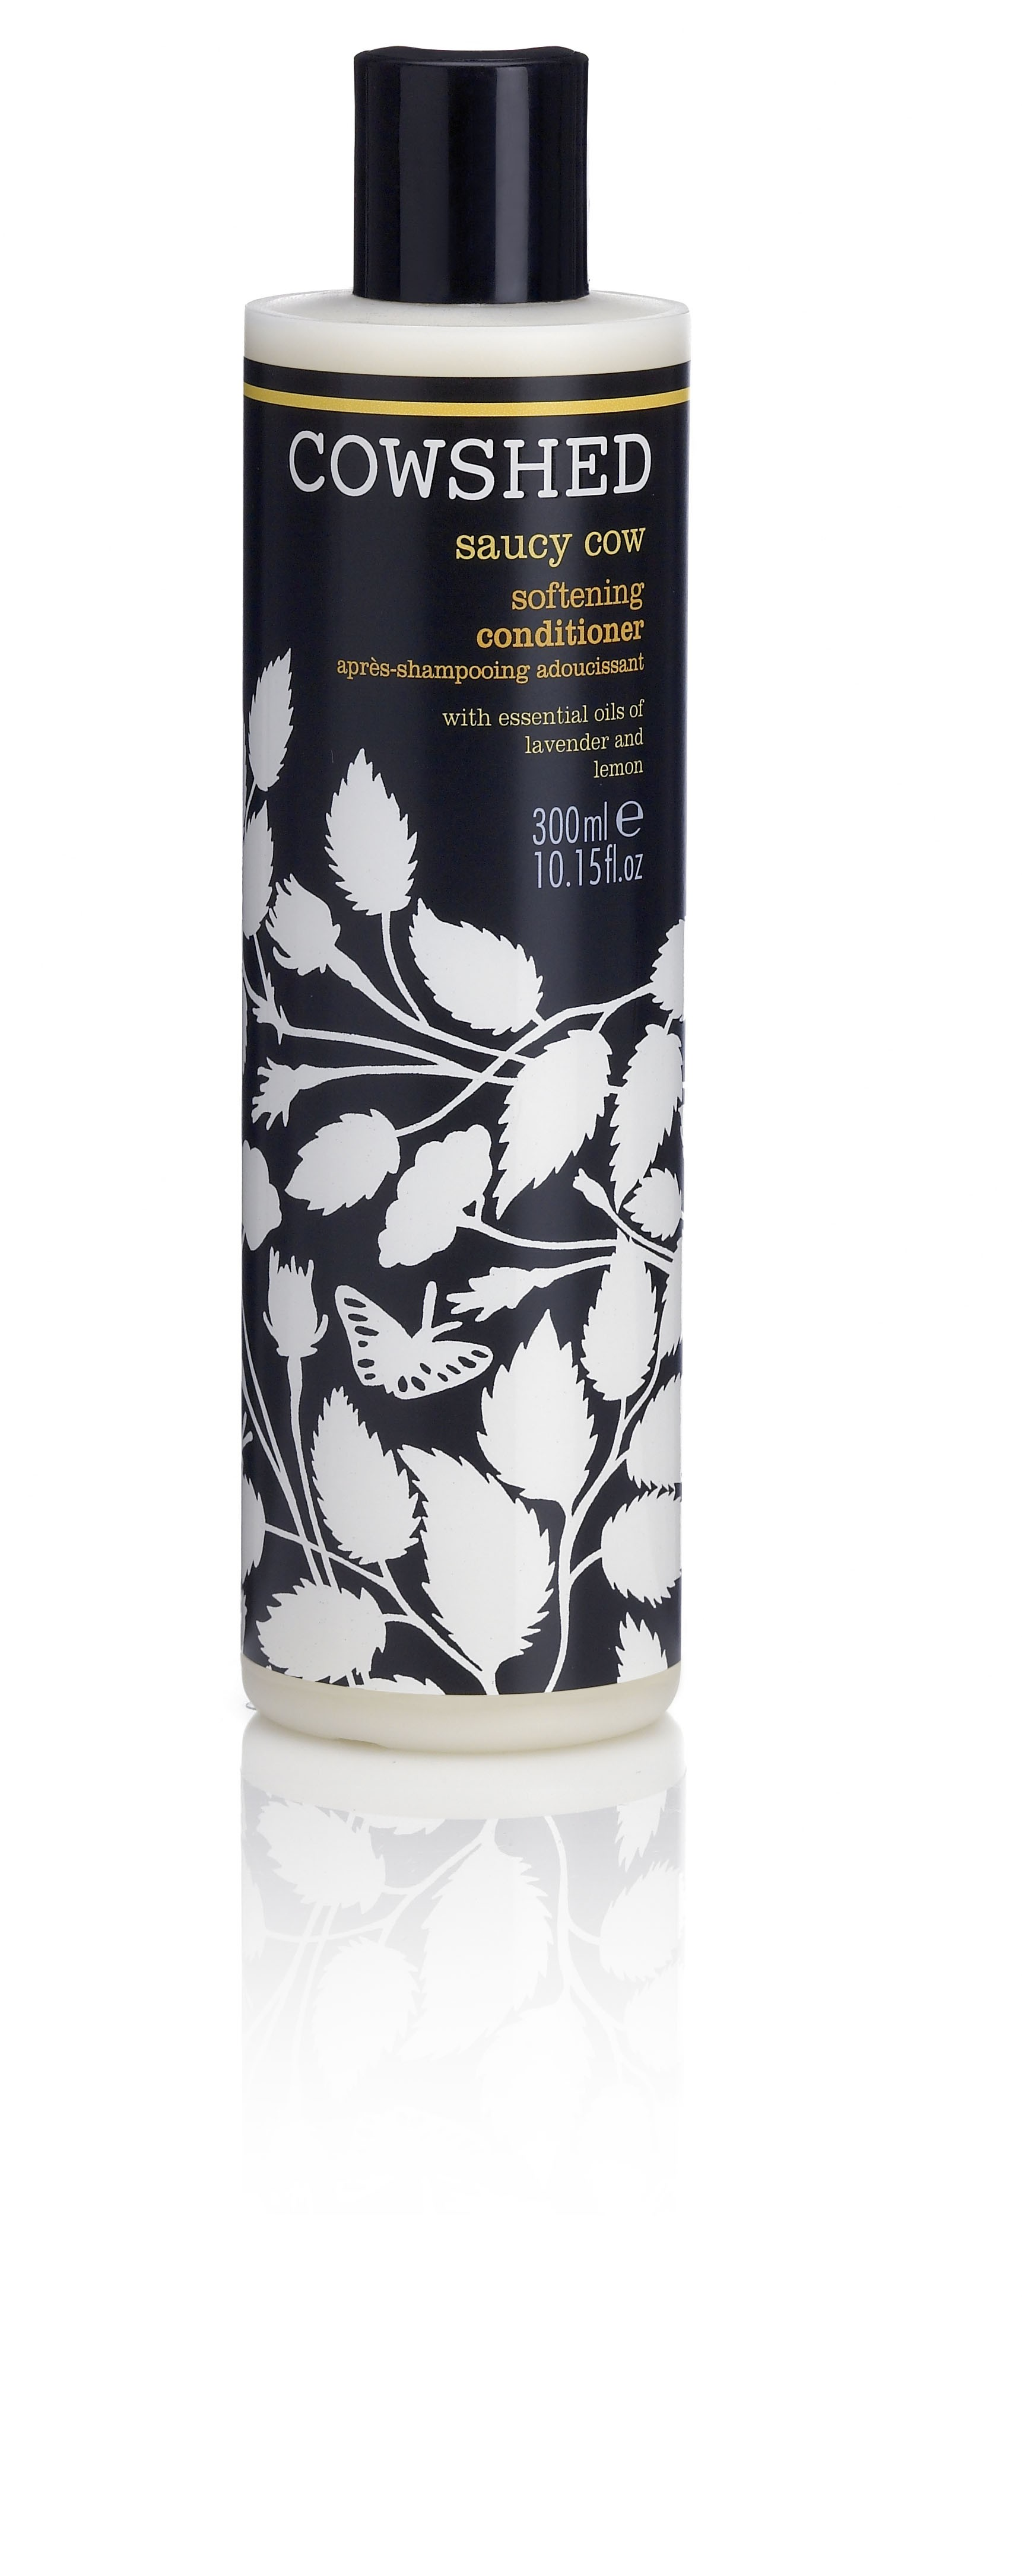 Billede af Cowshed Saucy Cow Softening Conditioner 300 ml.